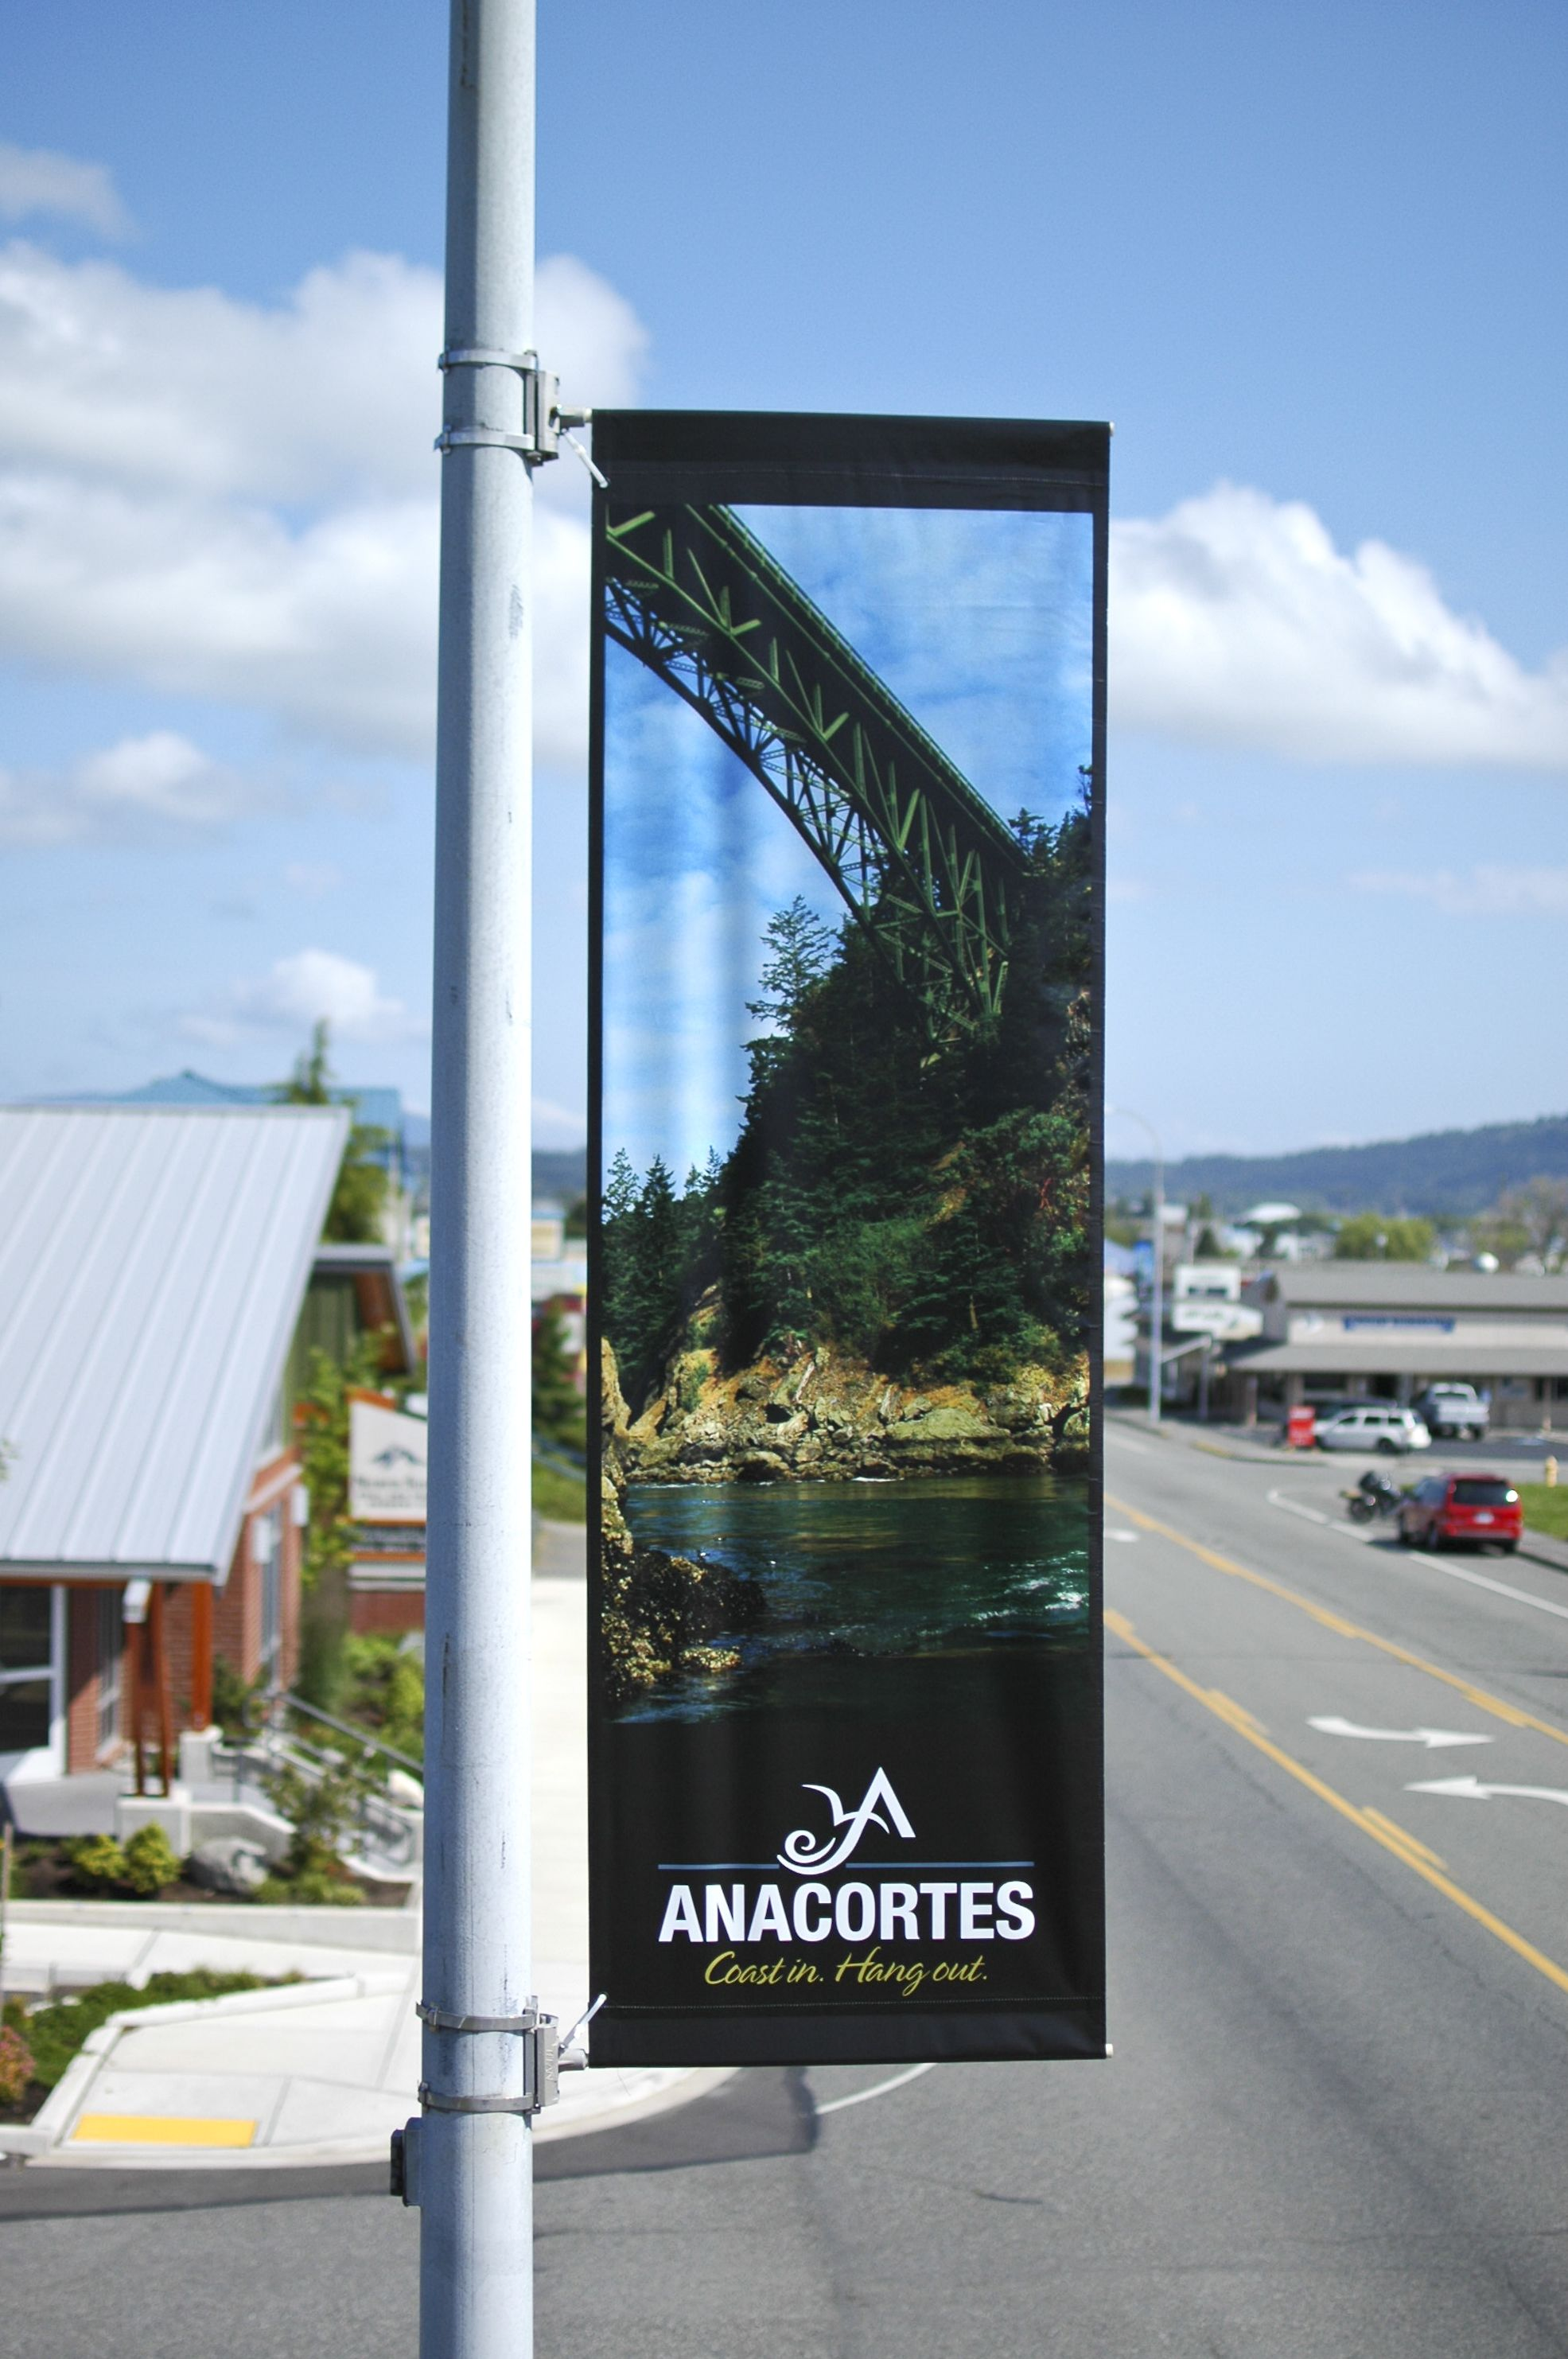 Banner banners banner poles outdoor display cheap custom -  Anacortes 1 Pepsi Parking Lot Pole Banners Theater Company